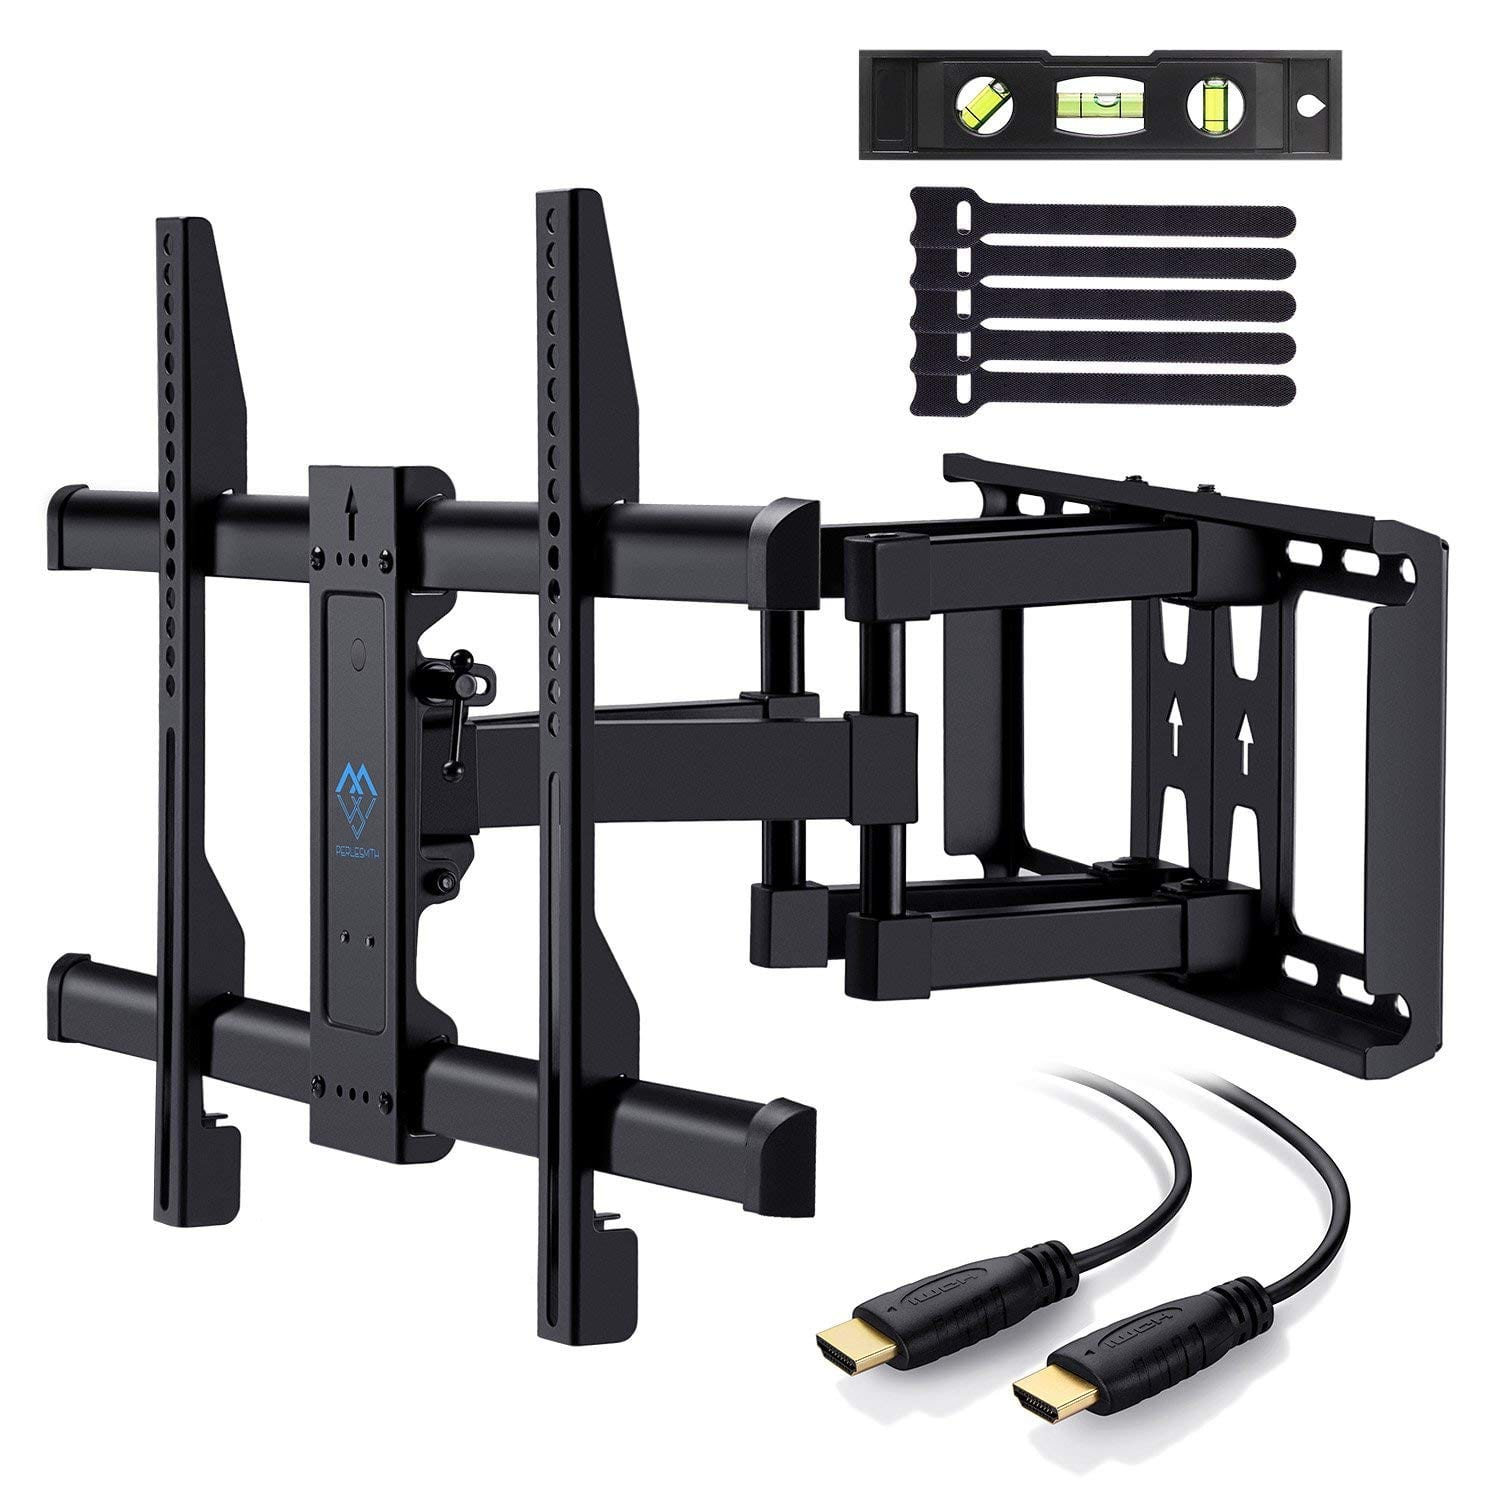 "PERLESMITH TV Wall Mount VESA Bracket for Most 37""-70"" TVs Up to 132lbs (5-Year Warranty, HDMI Cable, Full-Motion Dual Articulating Arm) $37.49 after 25% off"